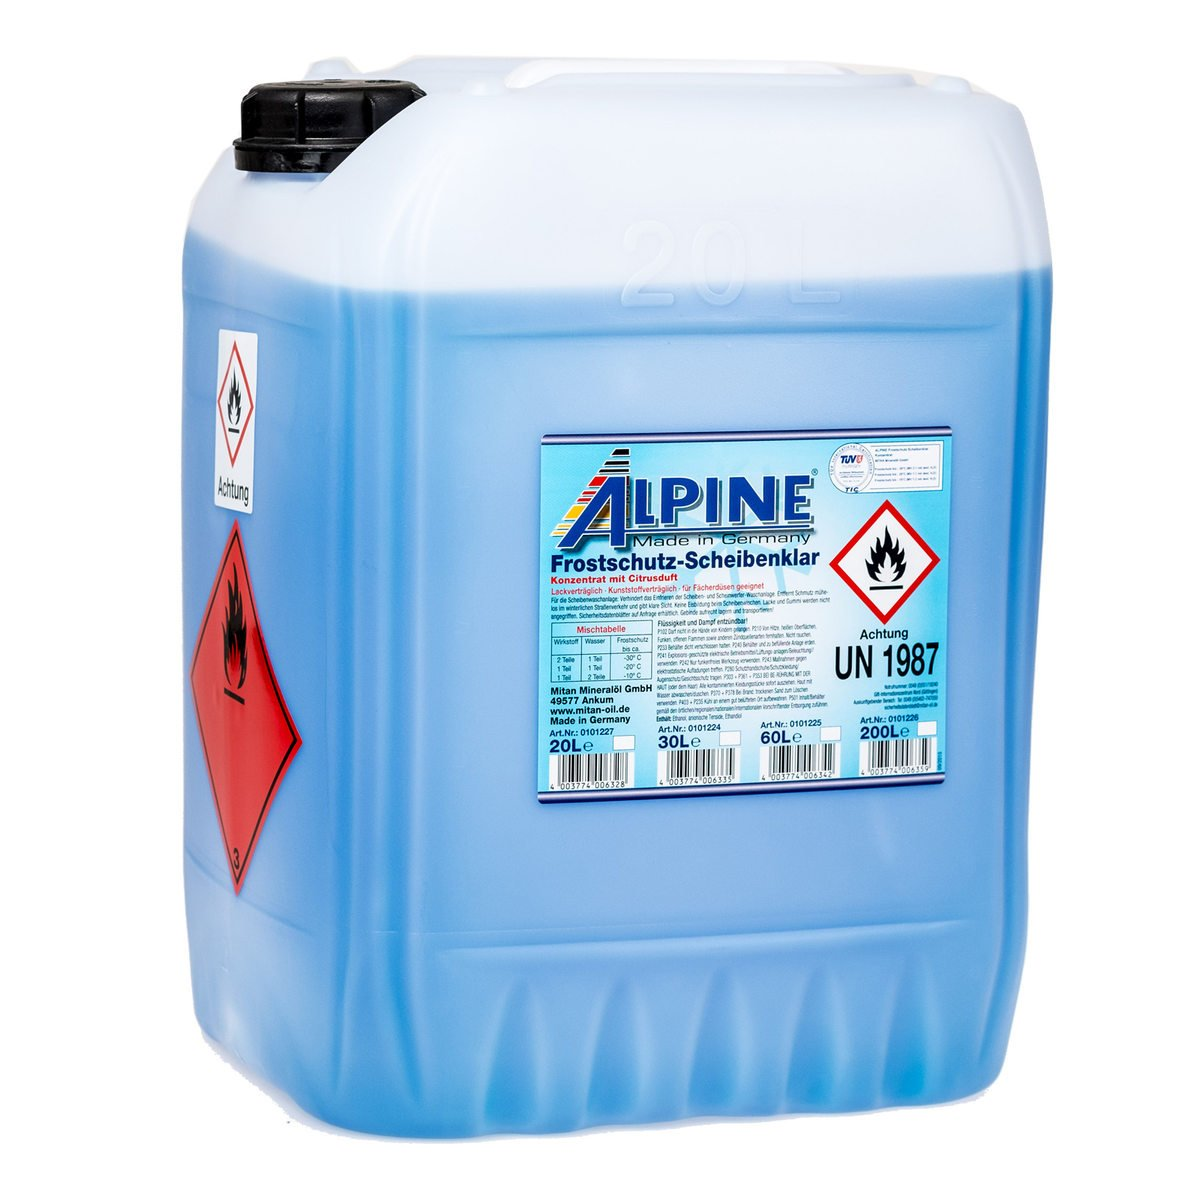 Alpine 0101222 Antifreeze Windscreen Washer, 50-100 ml of concentrate,1 Litre Dr. Starke